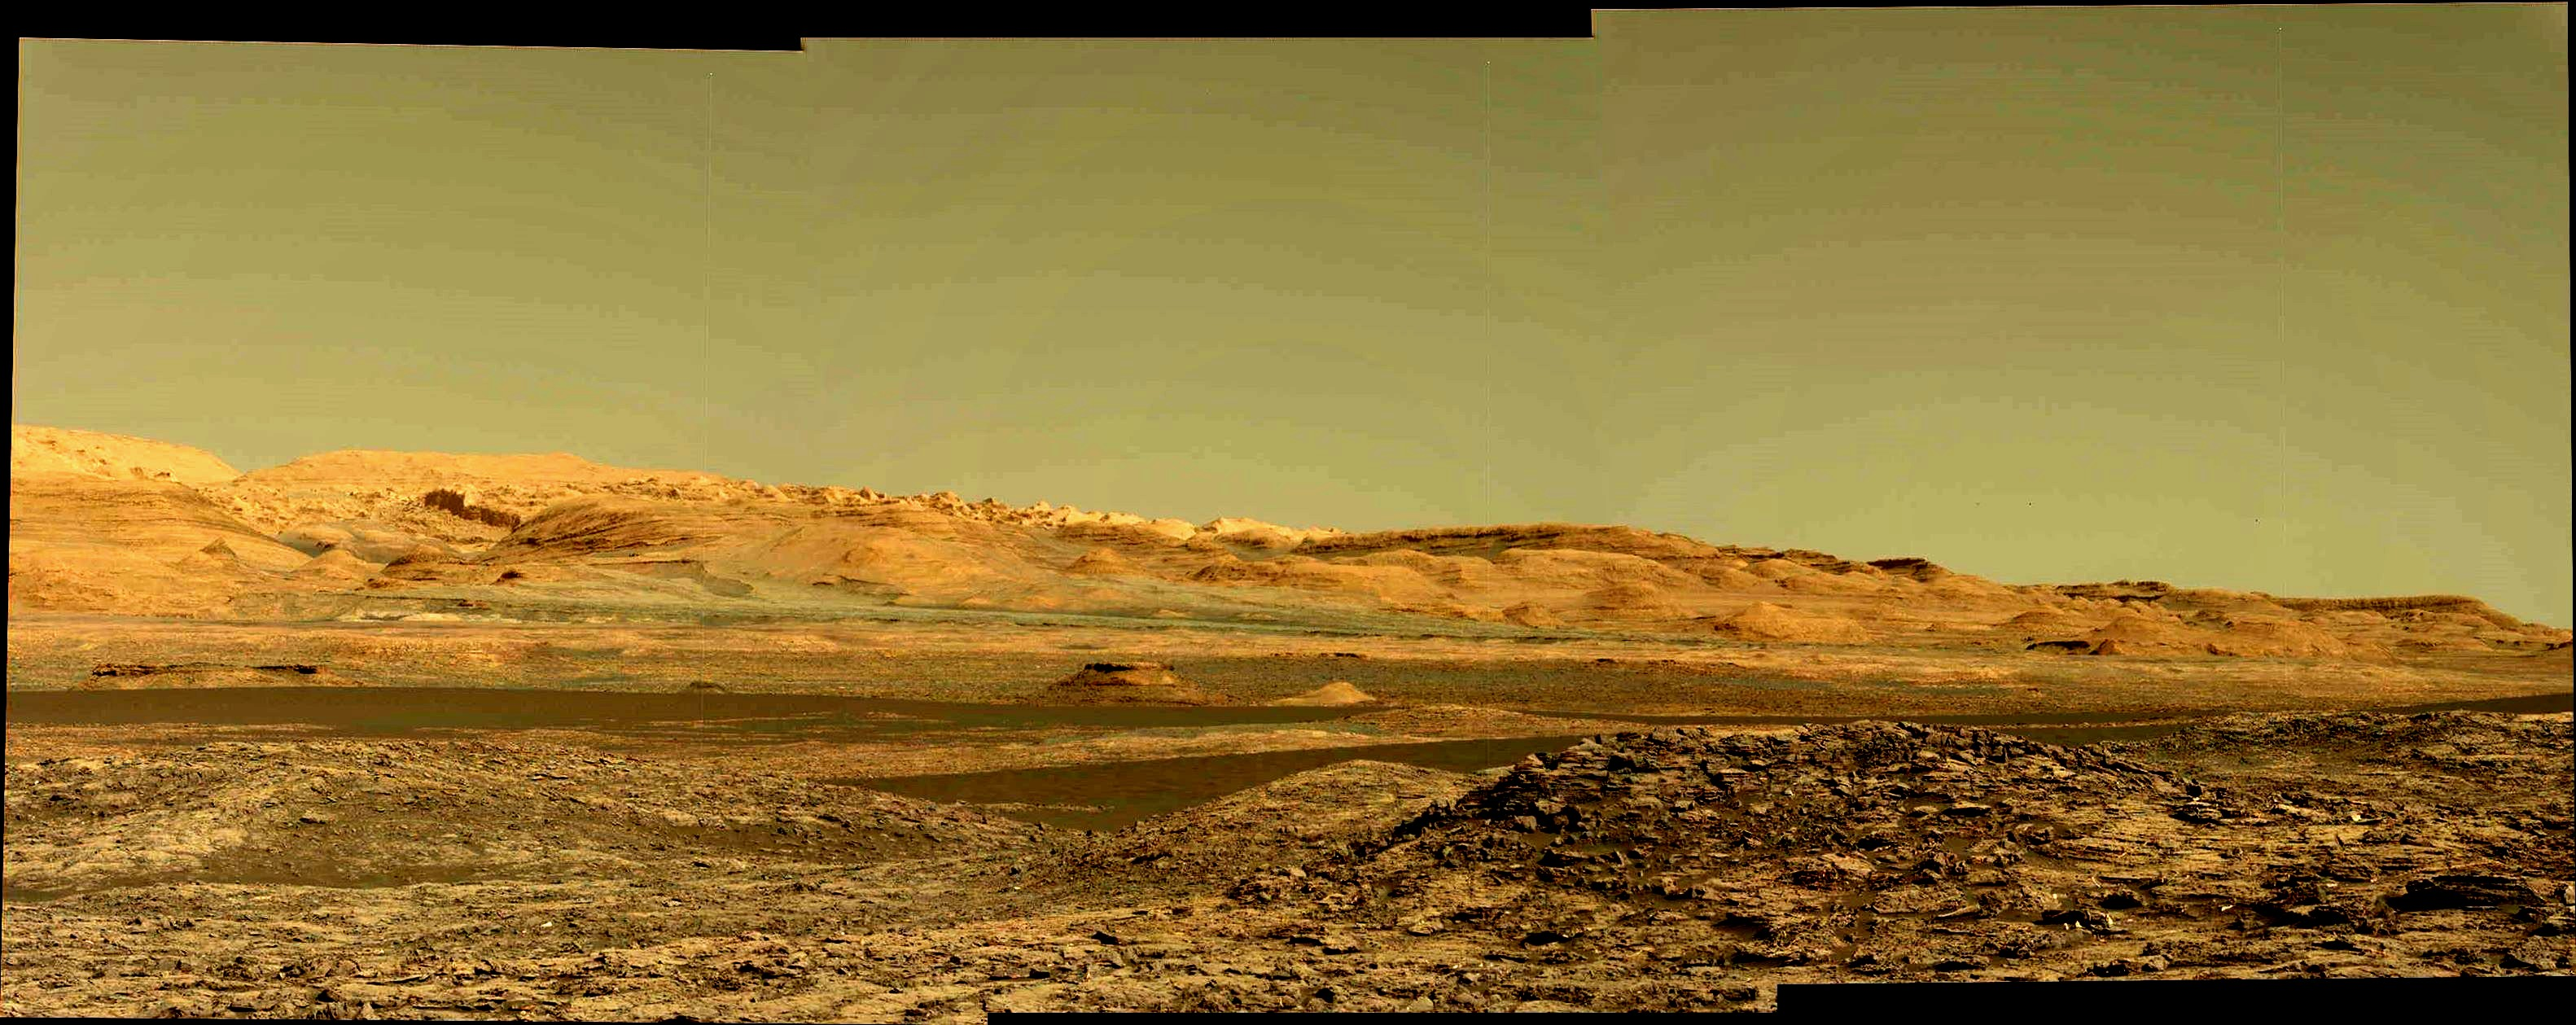 15 12 19 mastcam vallée obj 1197ml0054560000502947e01_dxxx_stitch tr